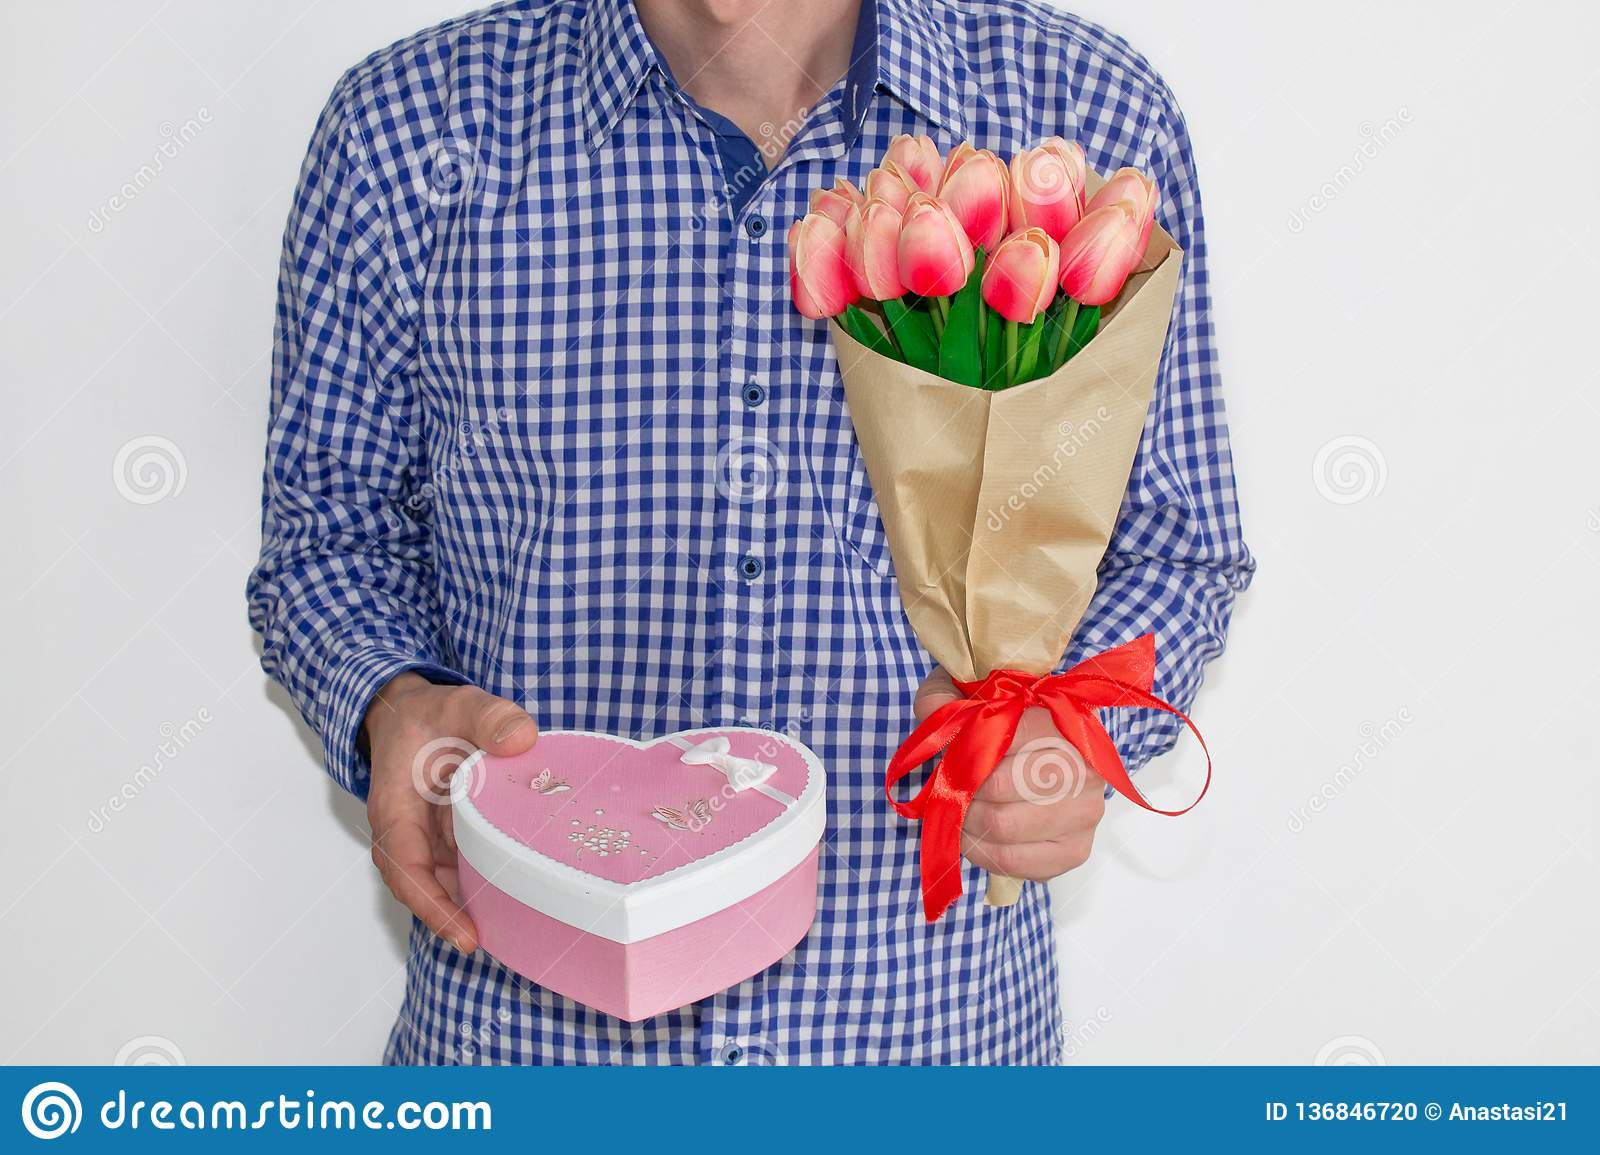 A young man in a blue plaid shirt and jeans, holding a bouquet of tulips and a gift box in the shape of a heart, on a white backgr